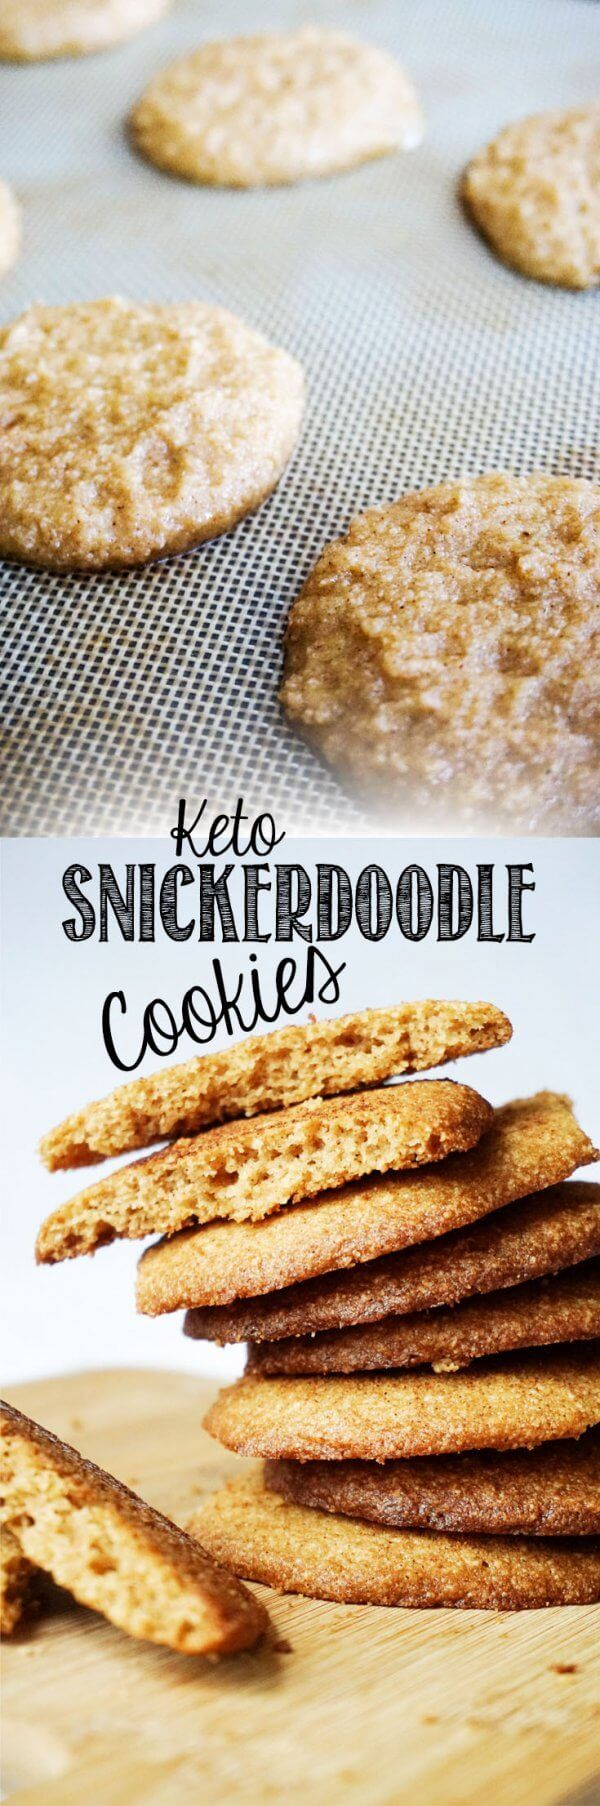 Low Carb Snickerdoodle Cookies perfect for any occasion!